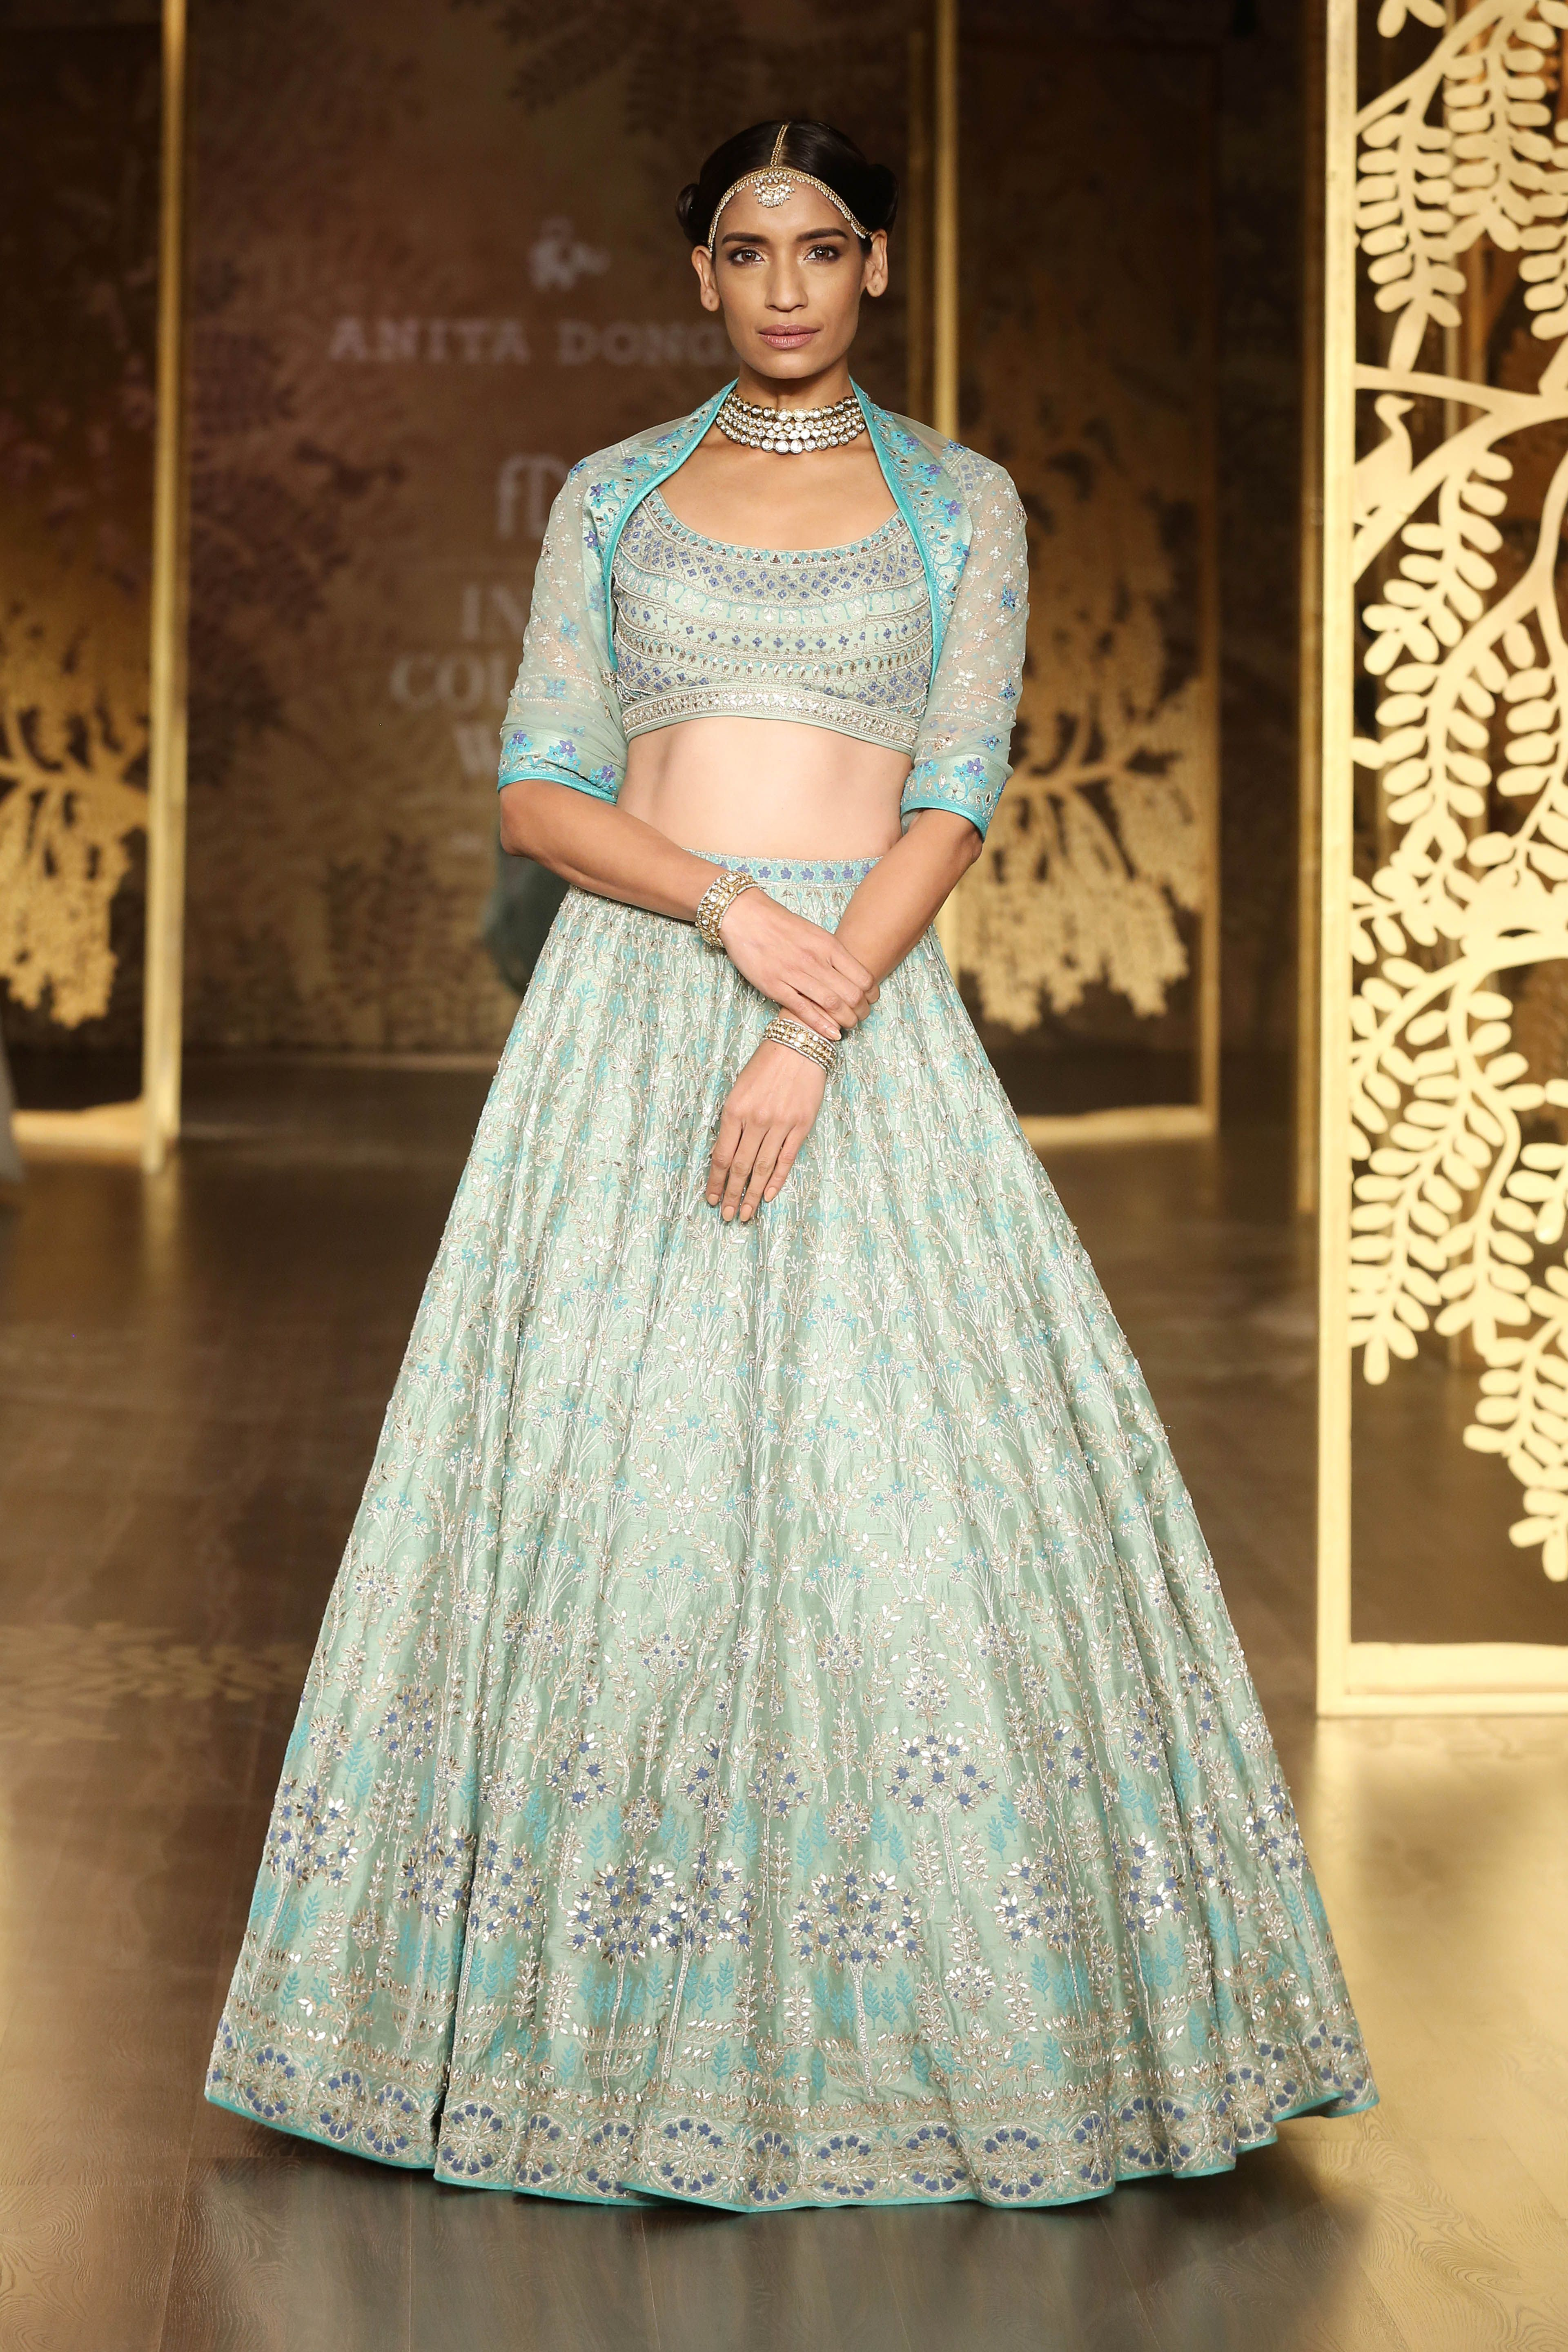 c0eeb29d8b8e Anita Dongre collection | Indian outfits in 2019 | Indian dresses ...